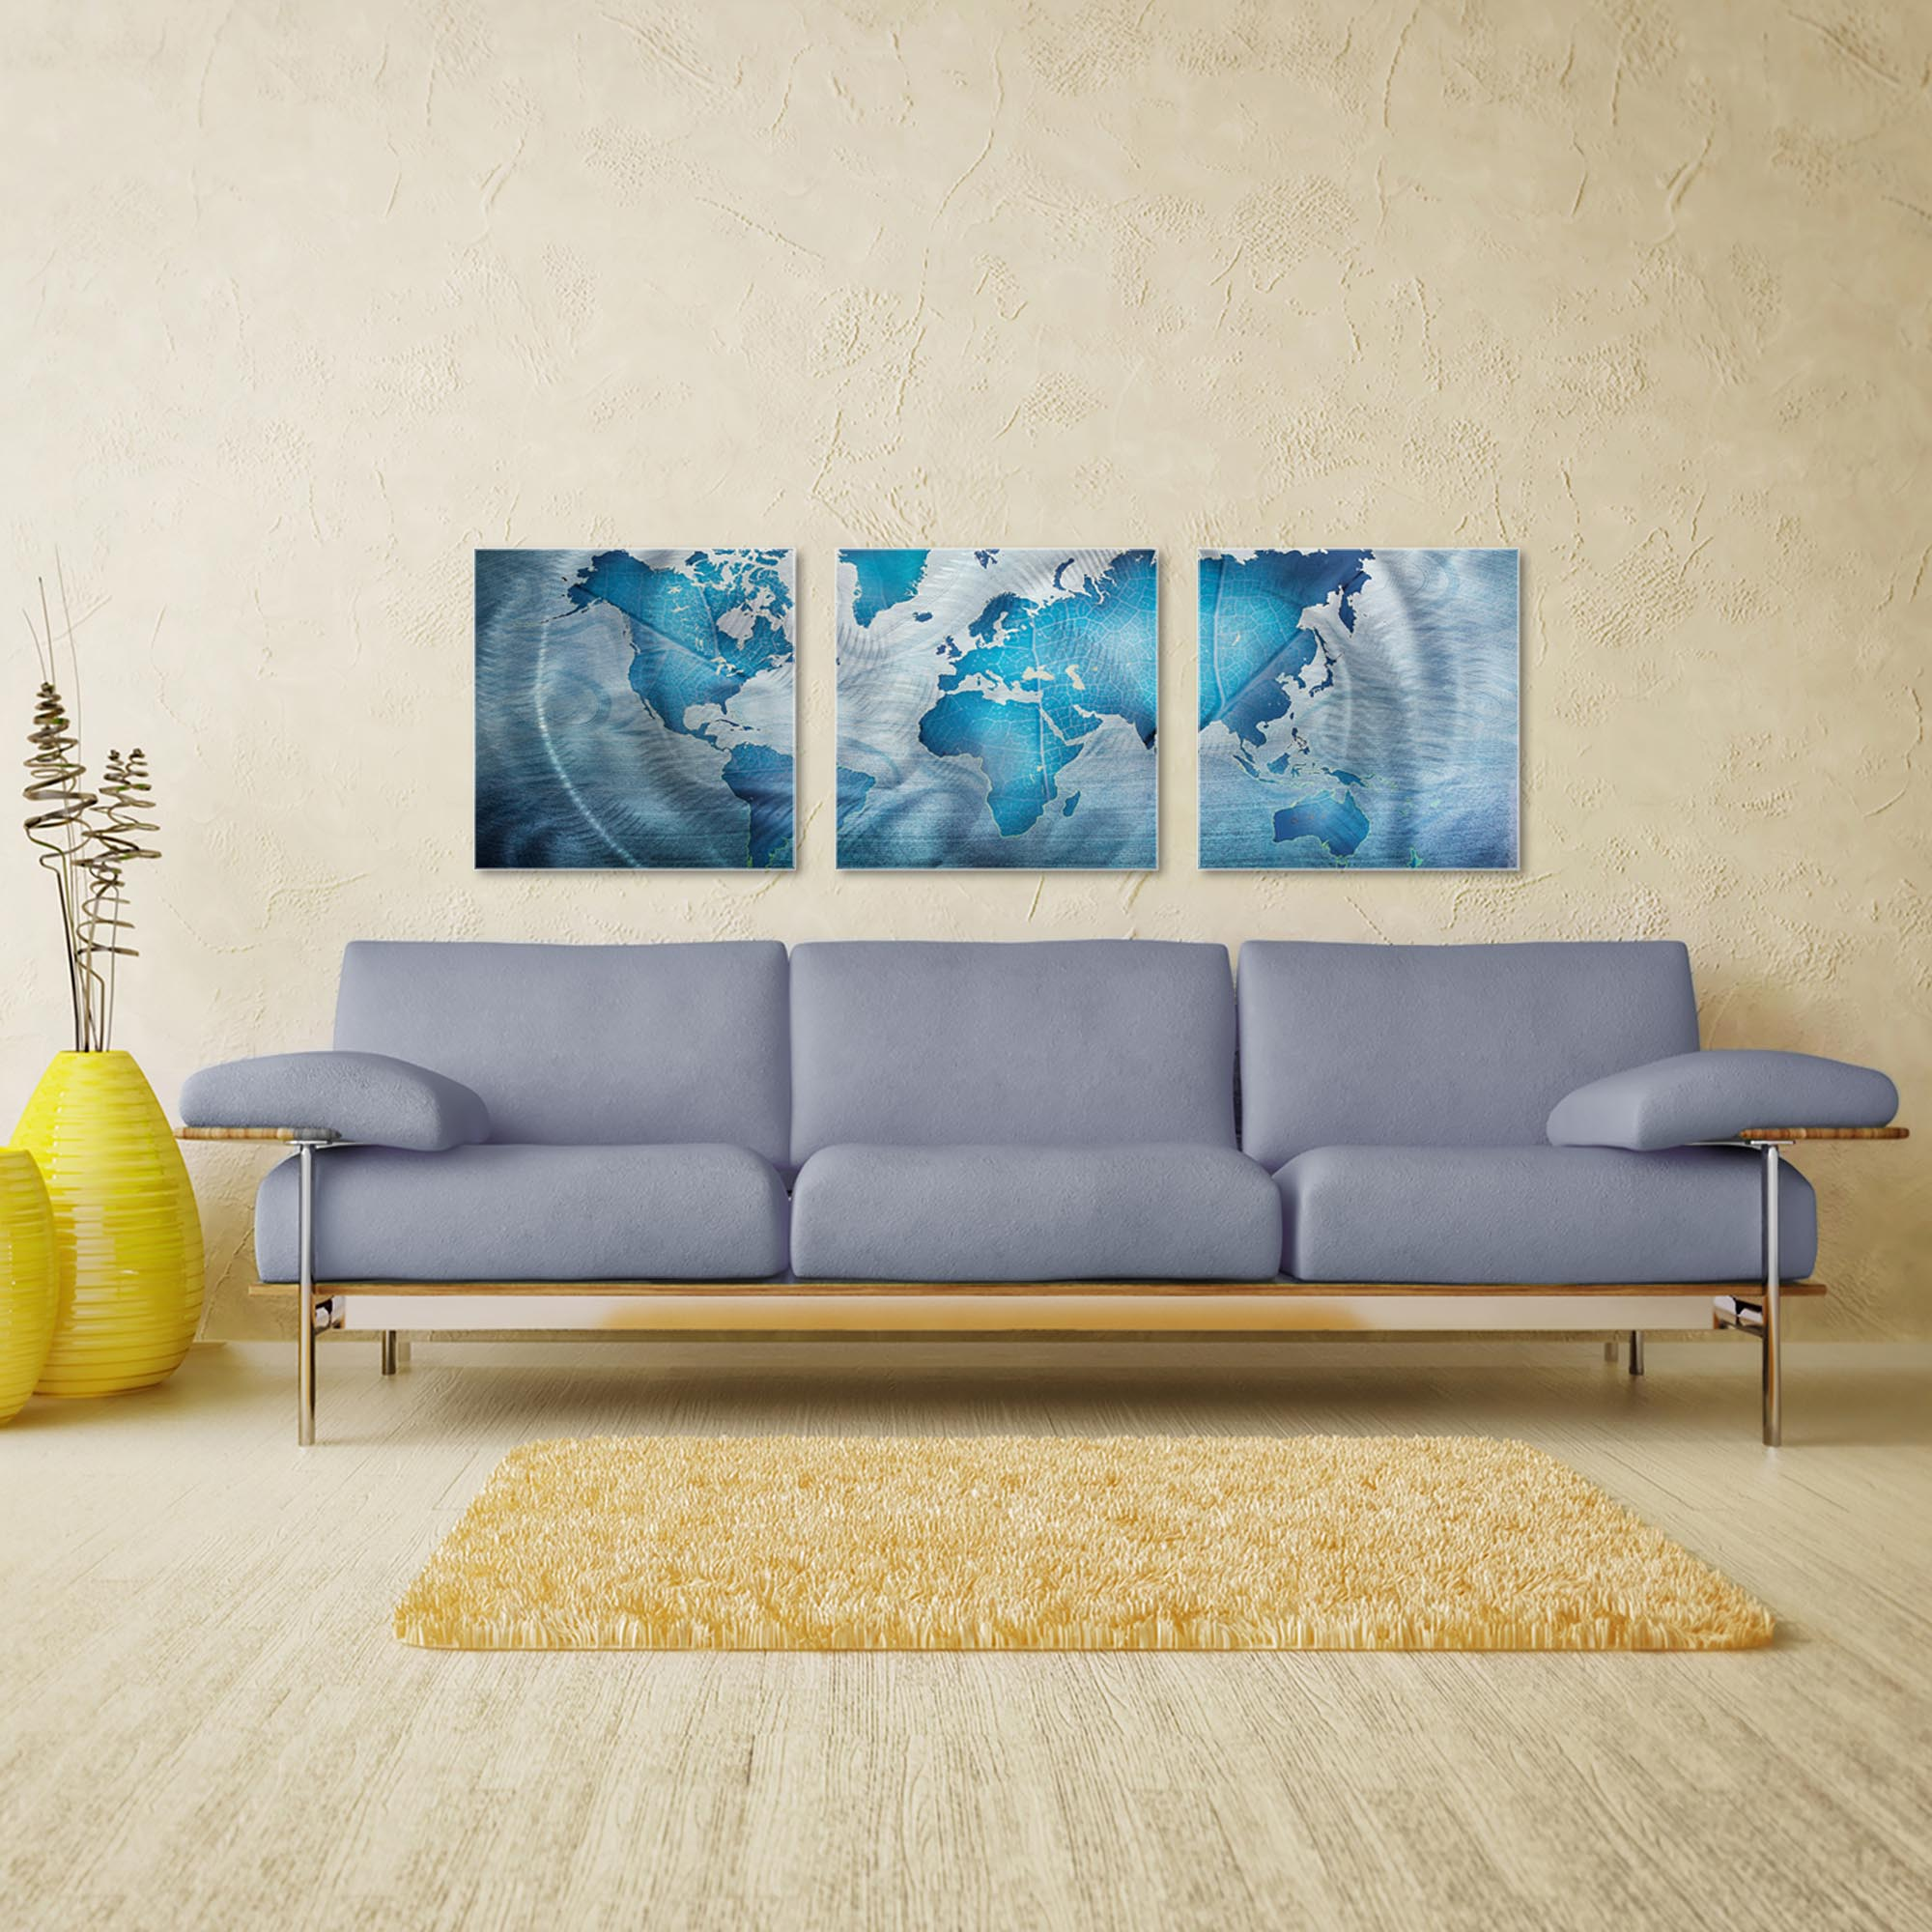 Land and Sea Triptych Large 70x22in. Metal or Acrylic Contemporary Decor - Image 3